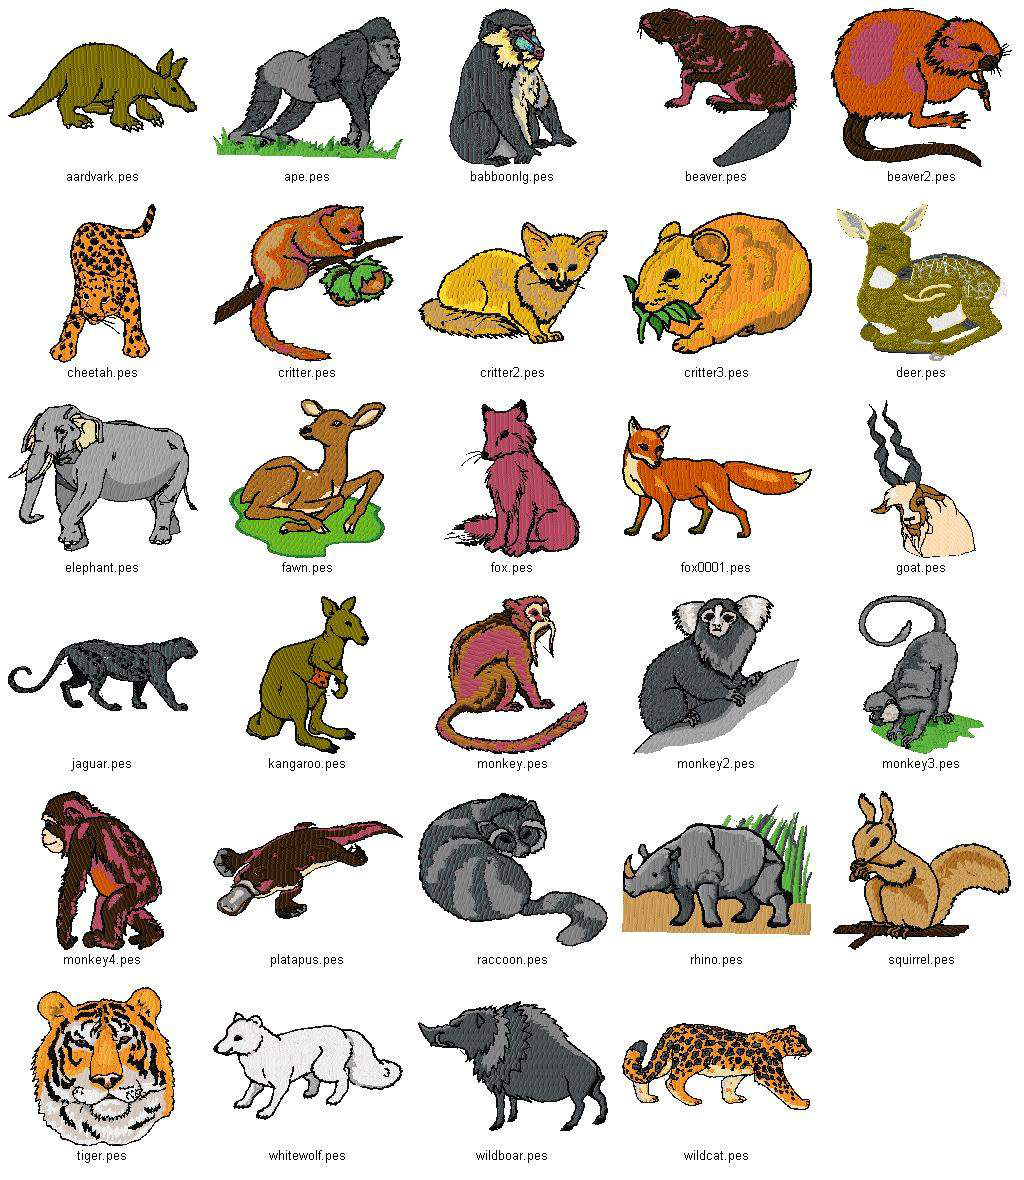 animals wild pet names chart animal information india embroidery african mammals machine collection